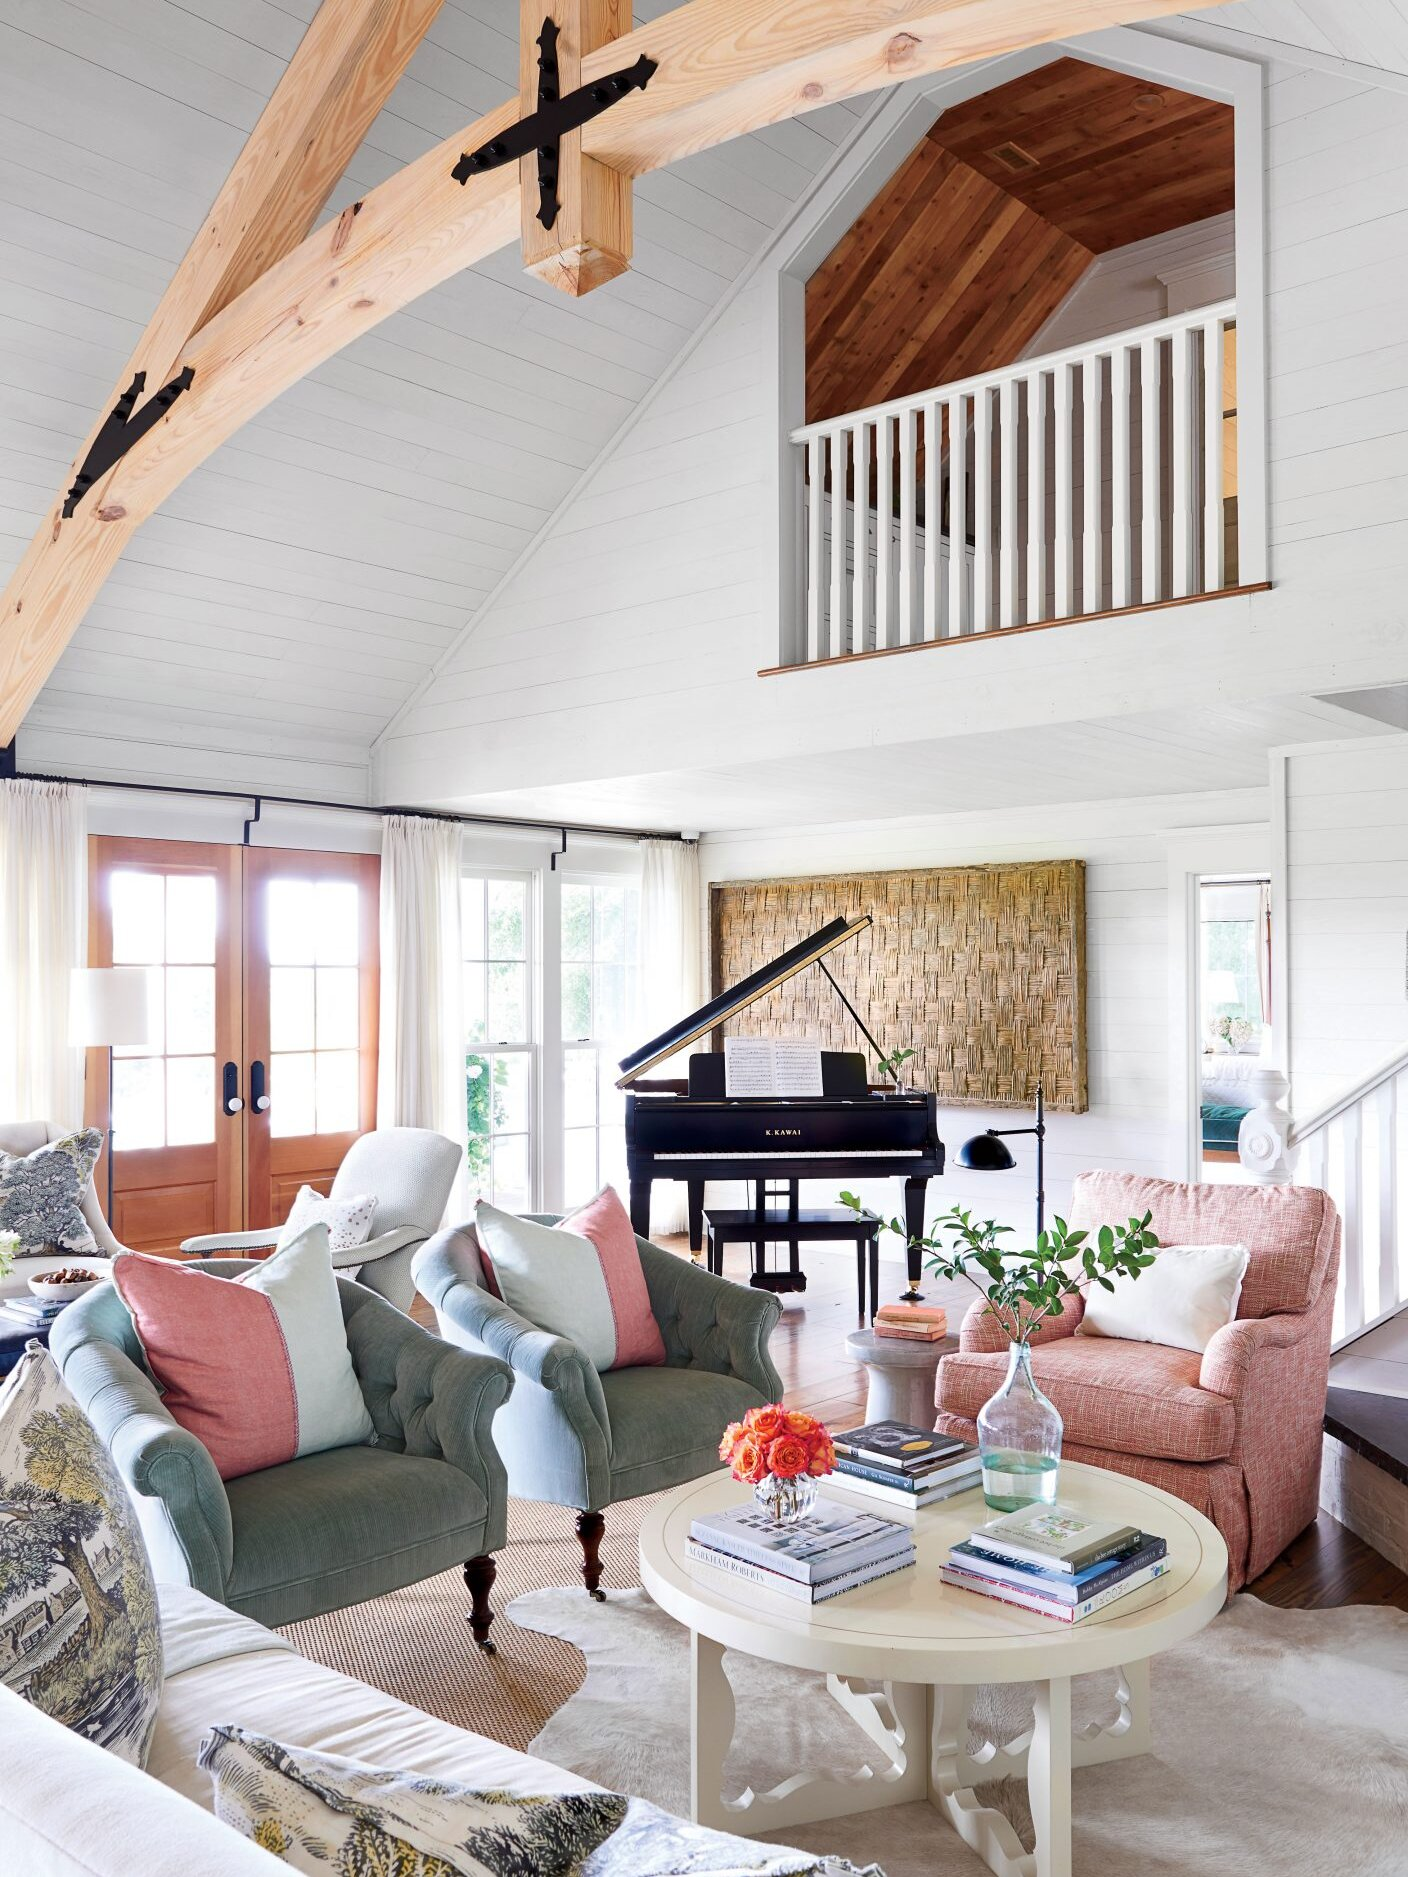 The Farmhouse Of Our Dreams All Started With A Single Instagram Post Southern Living